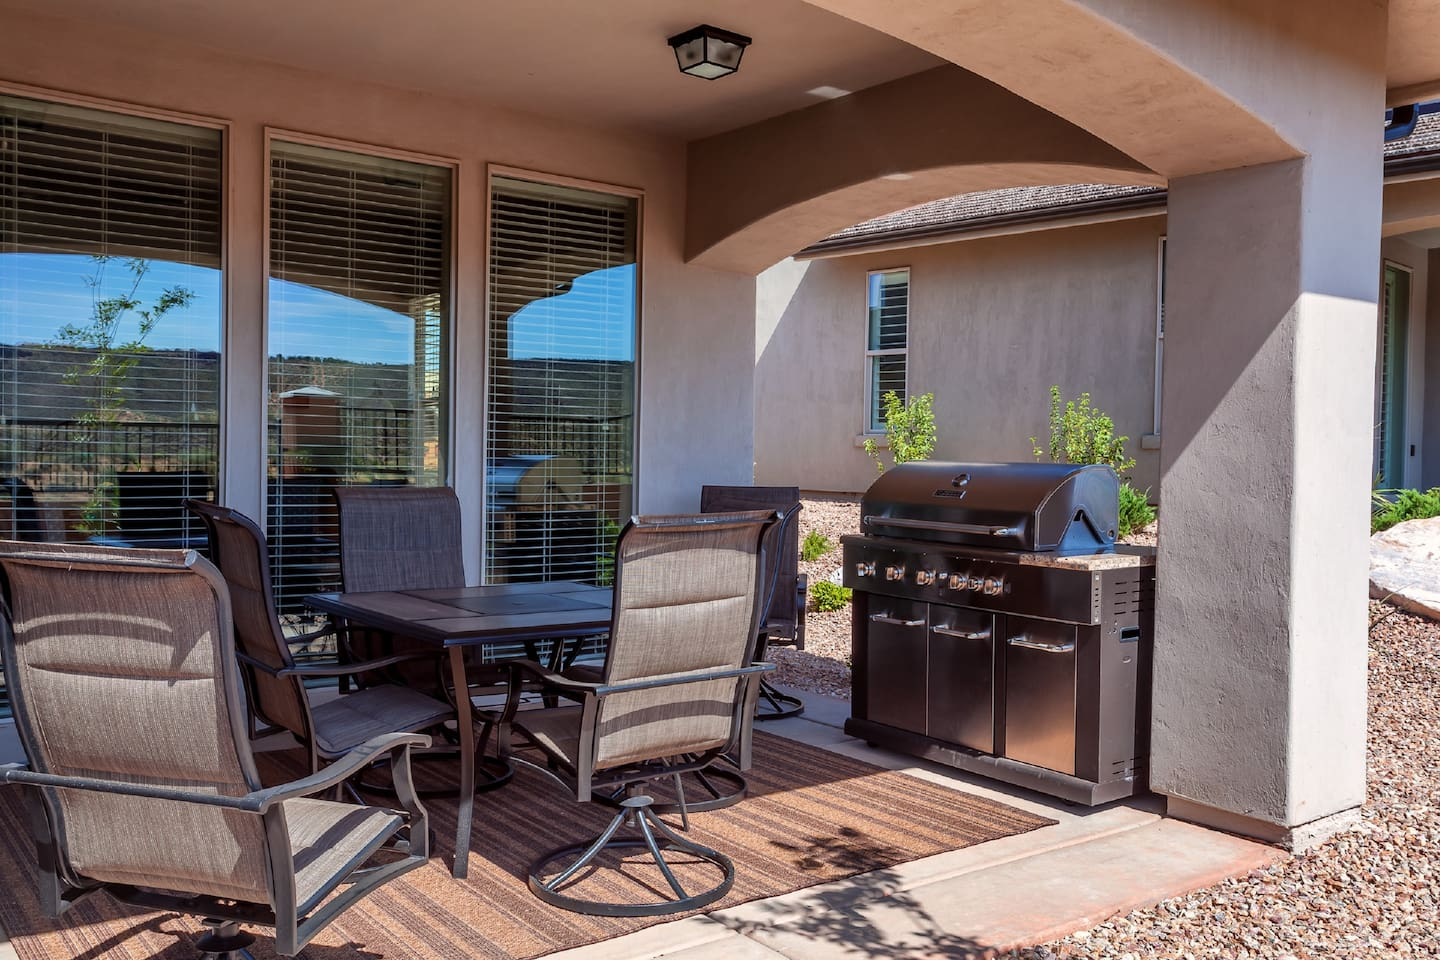 Backyard grill and patio seating